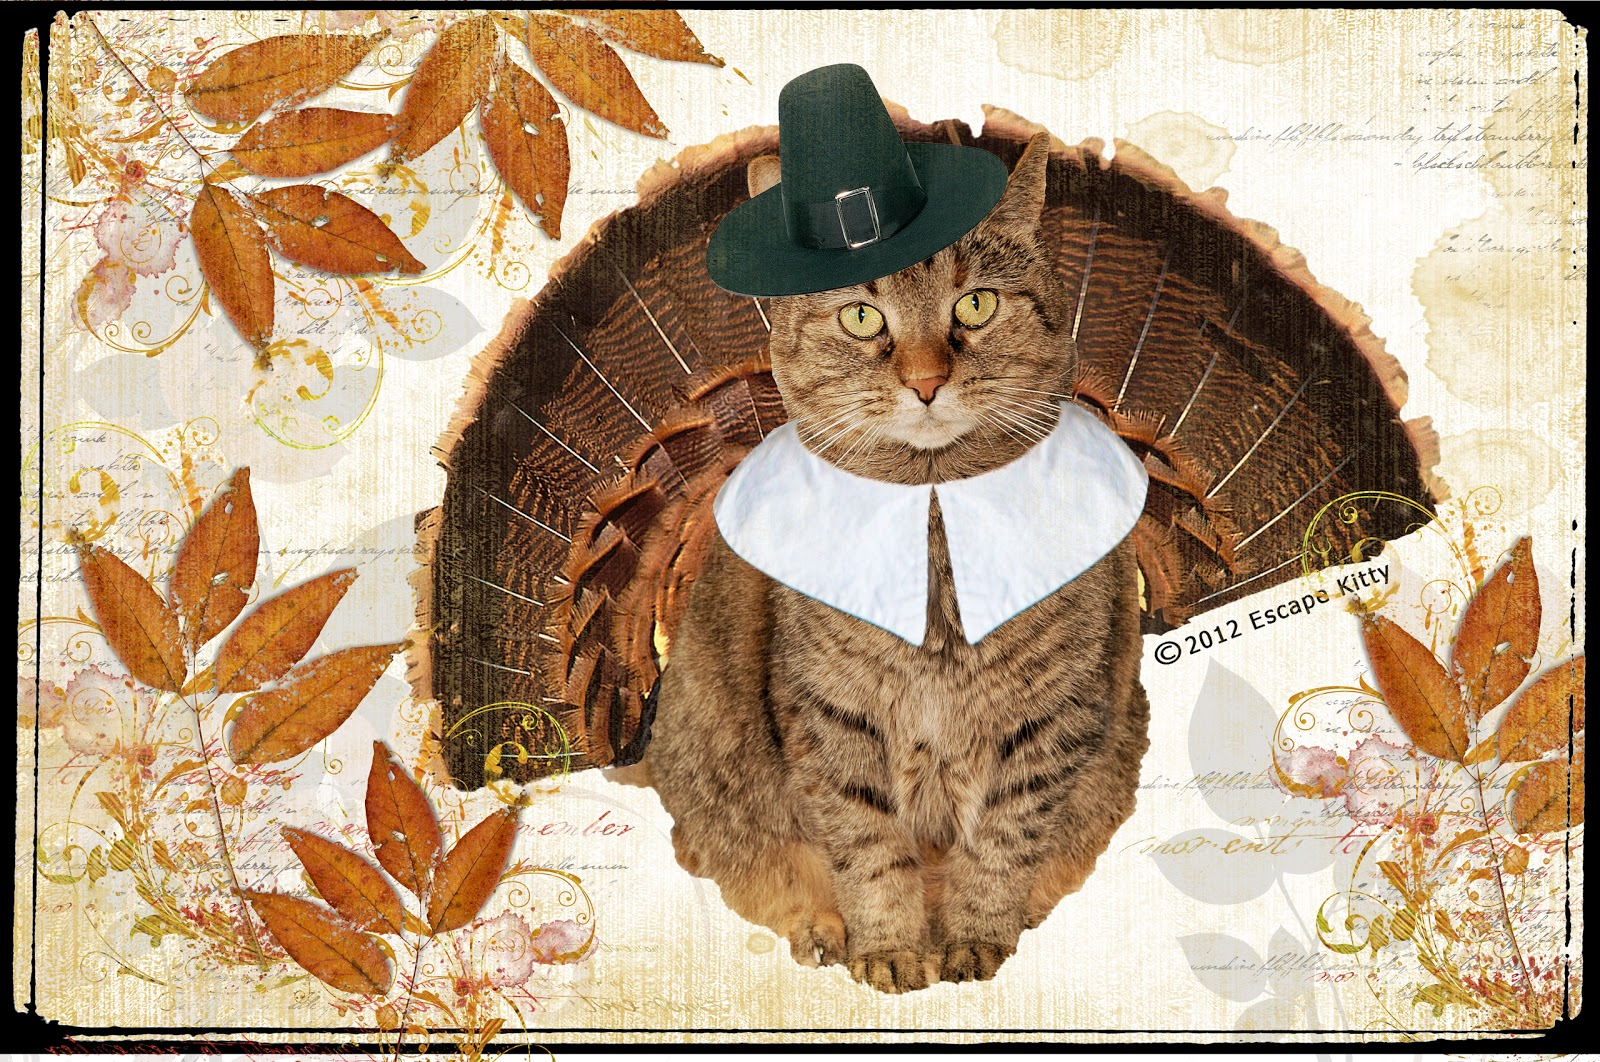 http://4.bp.blogspot.com/-lw1btGv4hhA/UKwyhF5I2jI/AAAAAAAAFcs/DQlfagfe3TQ/s1600/Thanksgiving+Kitty+in+photo.jpg